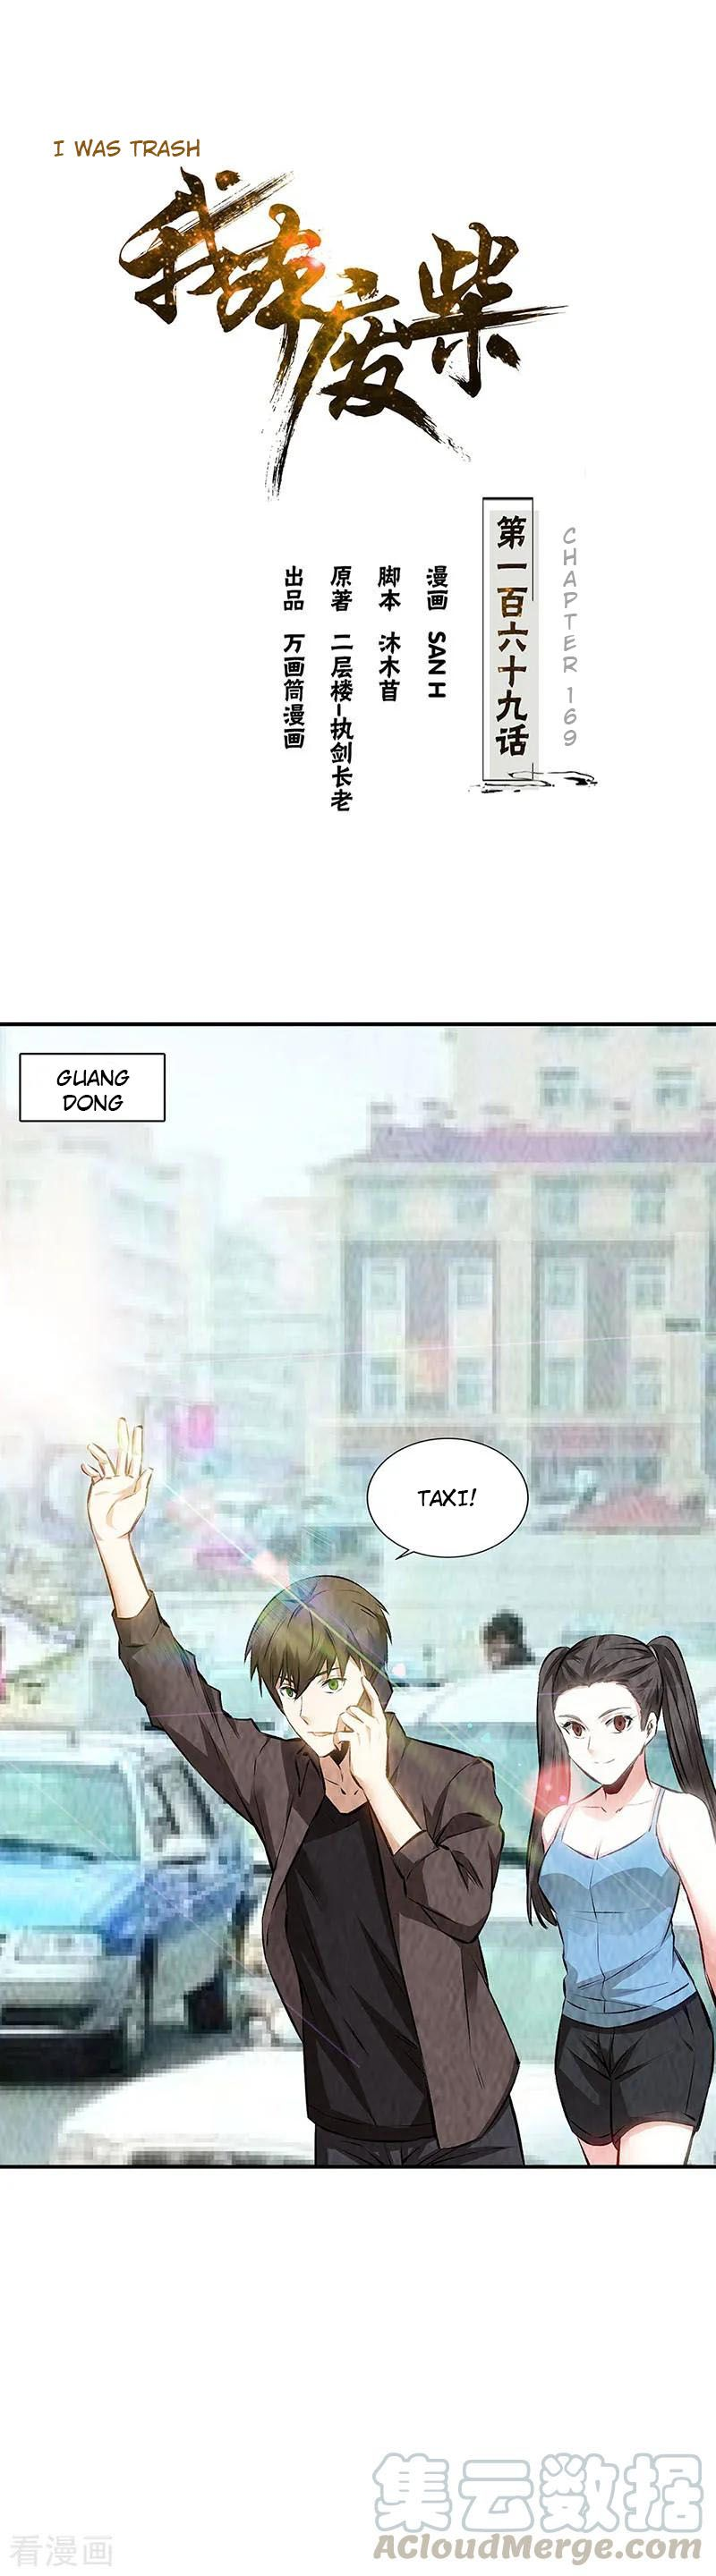 i Was Trash - chapter 169 - #3